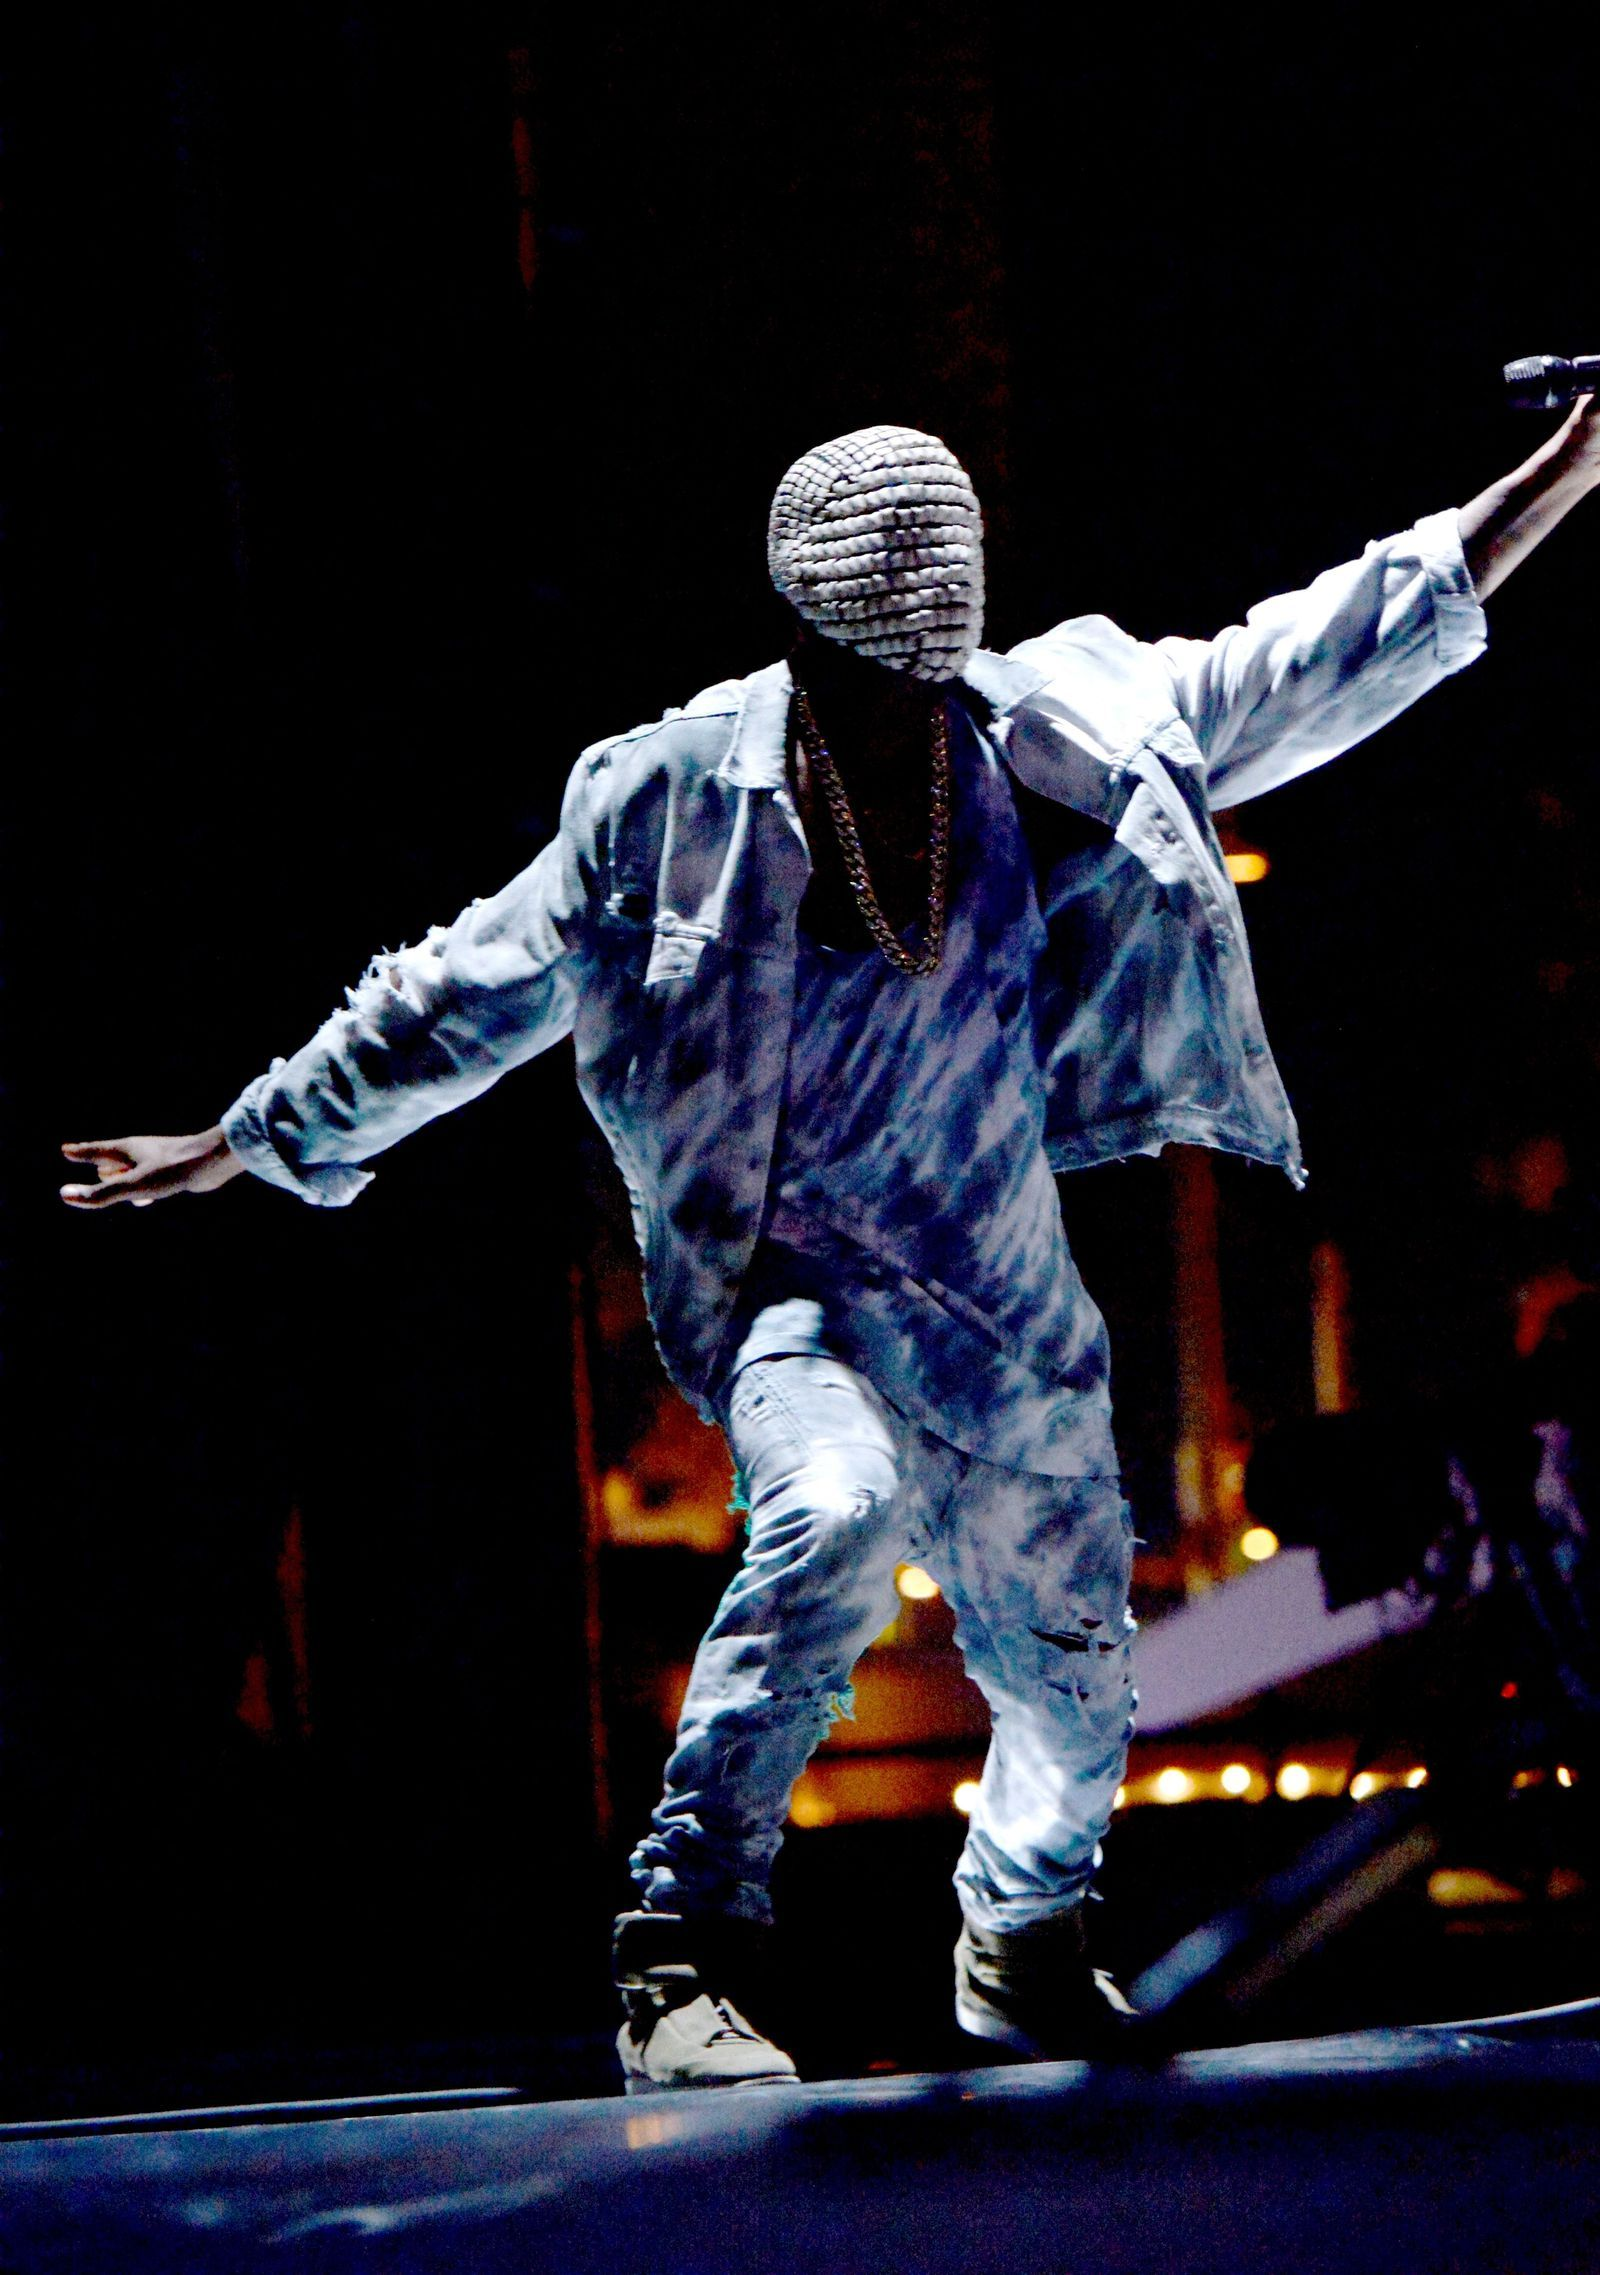 40 Of Kanye West S Most Kanye West Style Moments Kanye West Style Kanye West Yeezus Kanye West Wallpaper